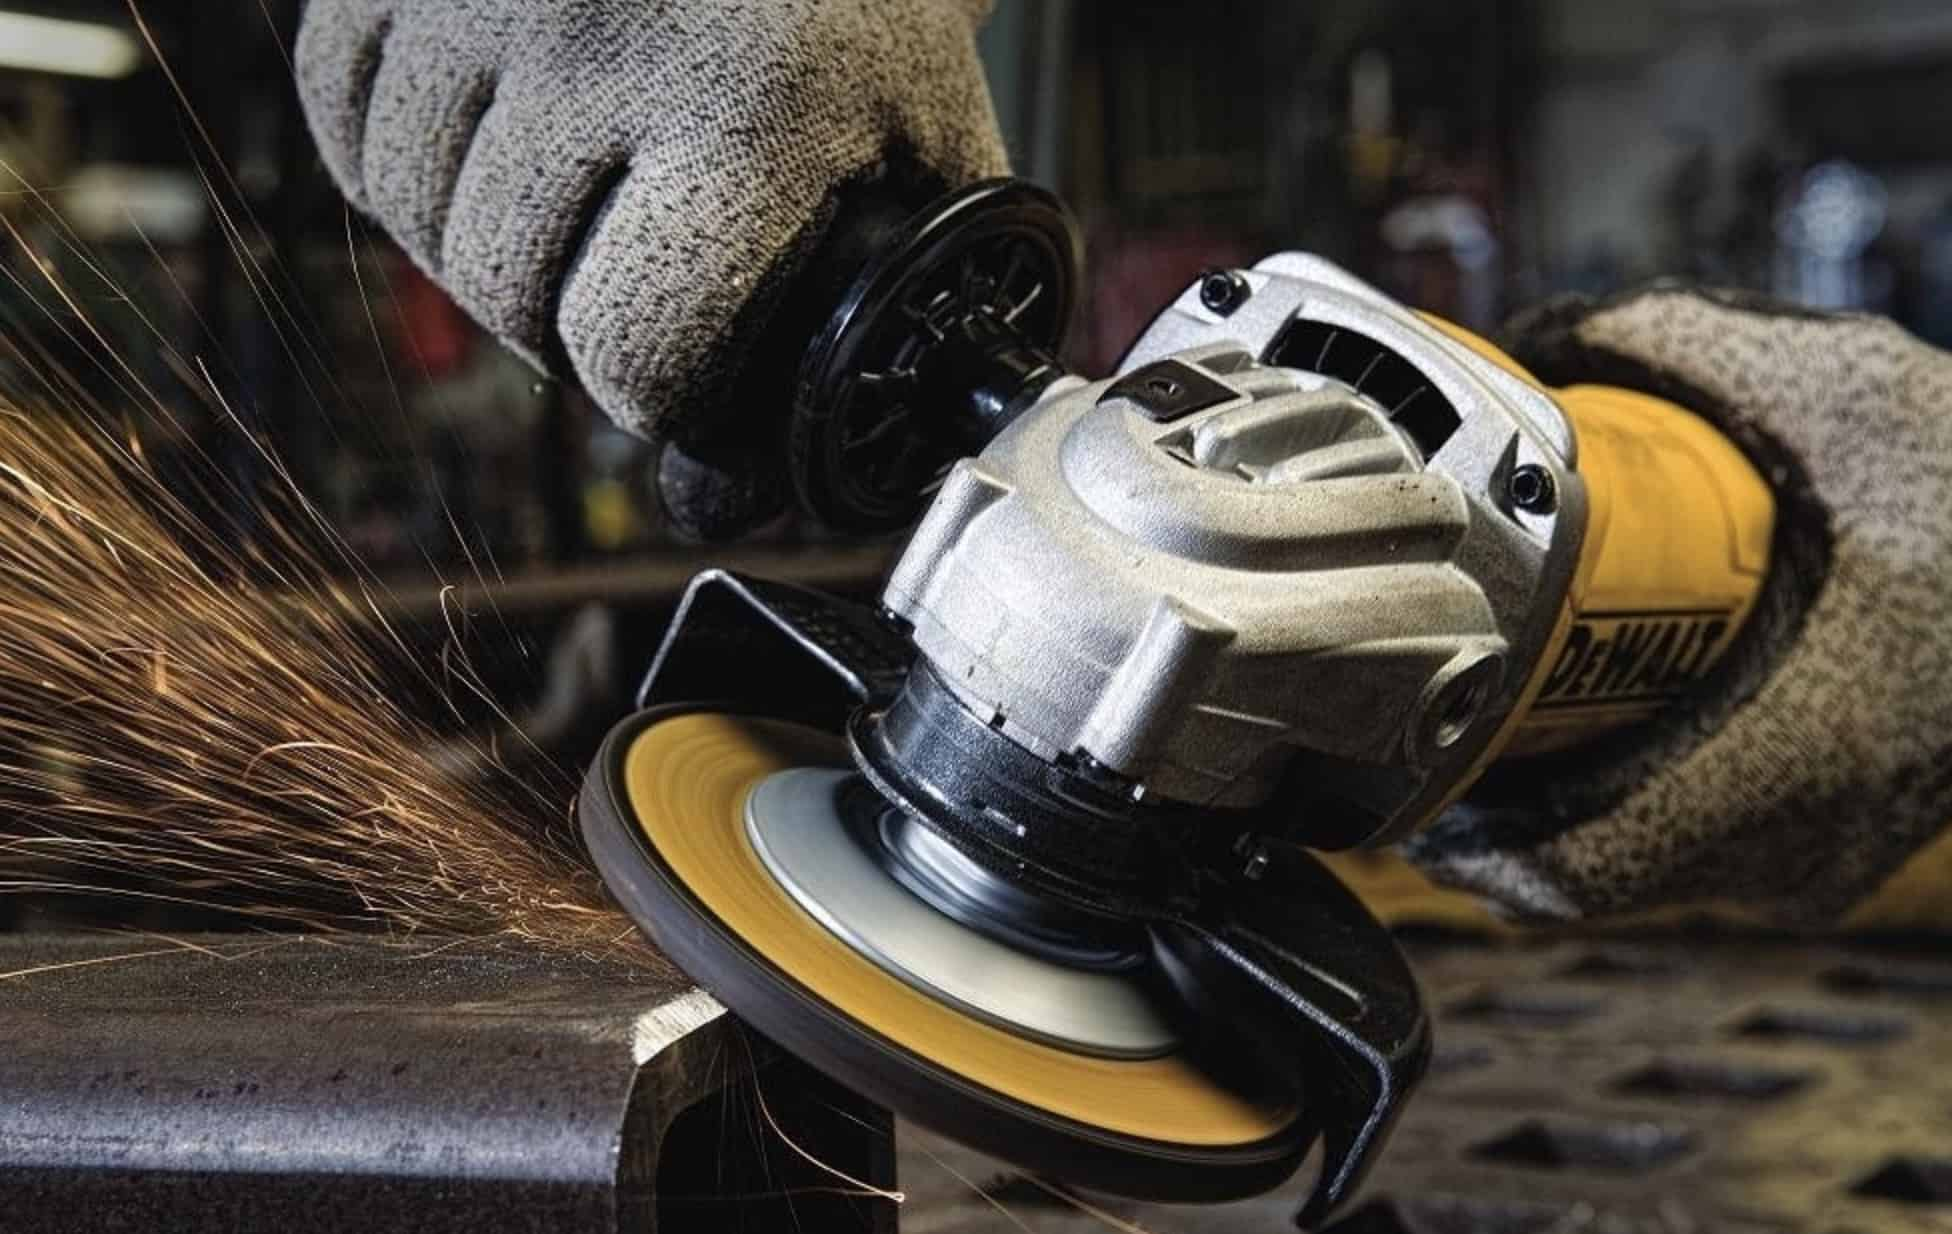 How Versatile Are The Angle Grinder Uses